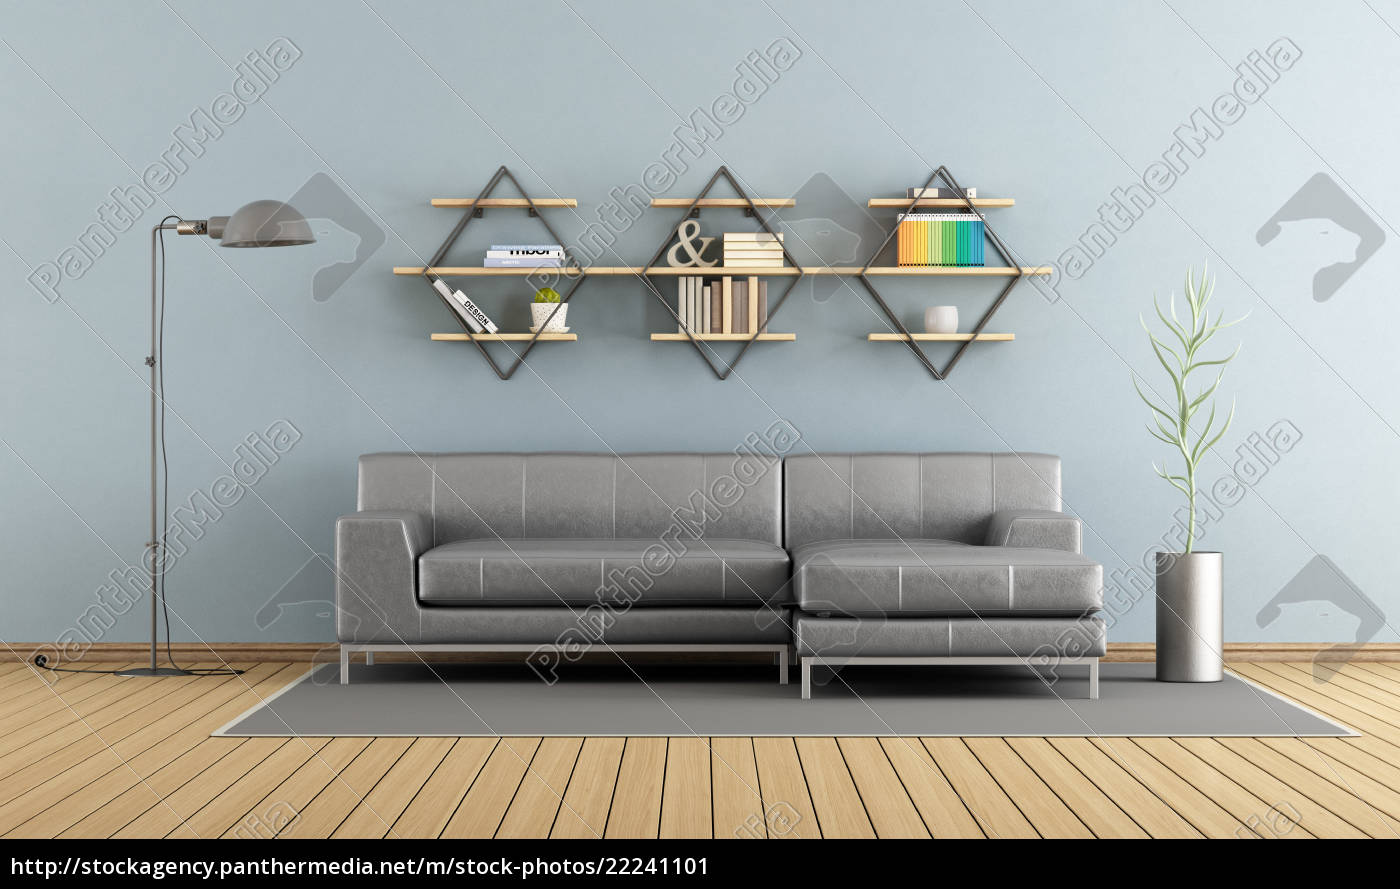 Stock Photo 22241101 - Modern living room with sofa and shelves